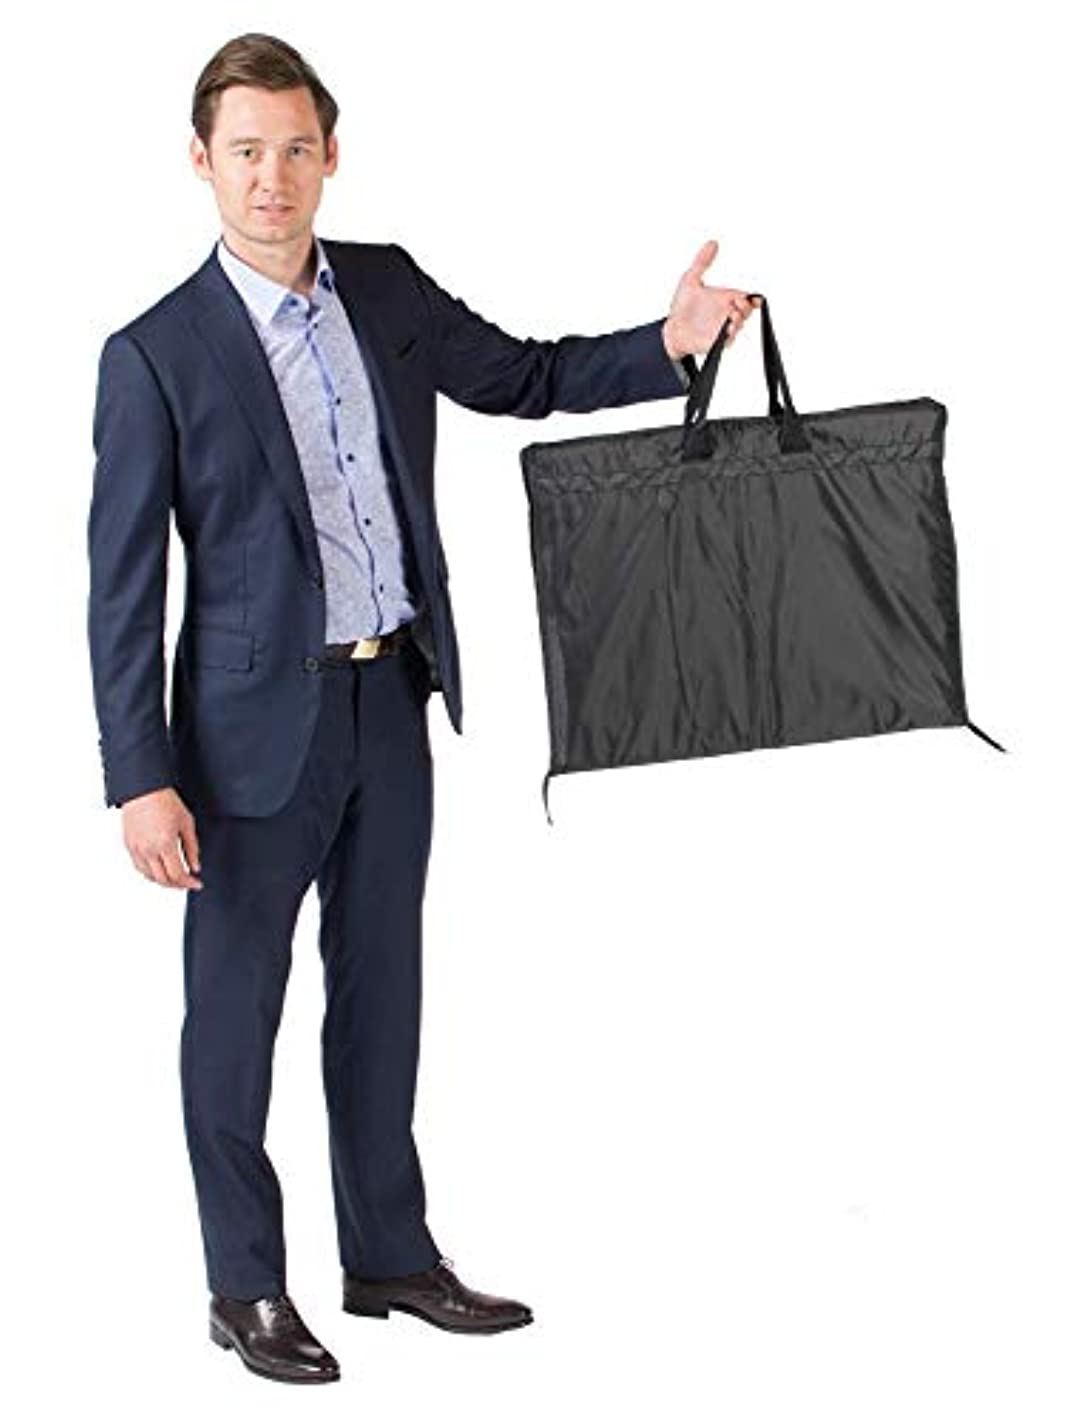 LORDS of WOOL Ultra Slim Carry-On Garment Bag that unzips to Garment Cover for Storage